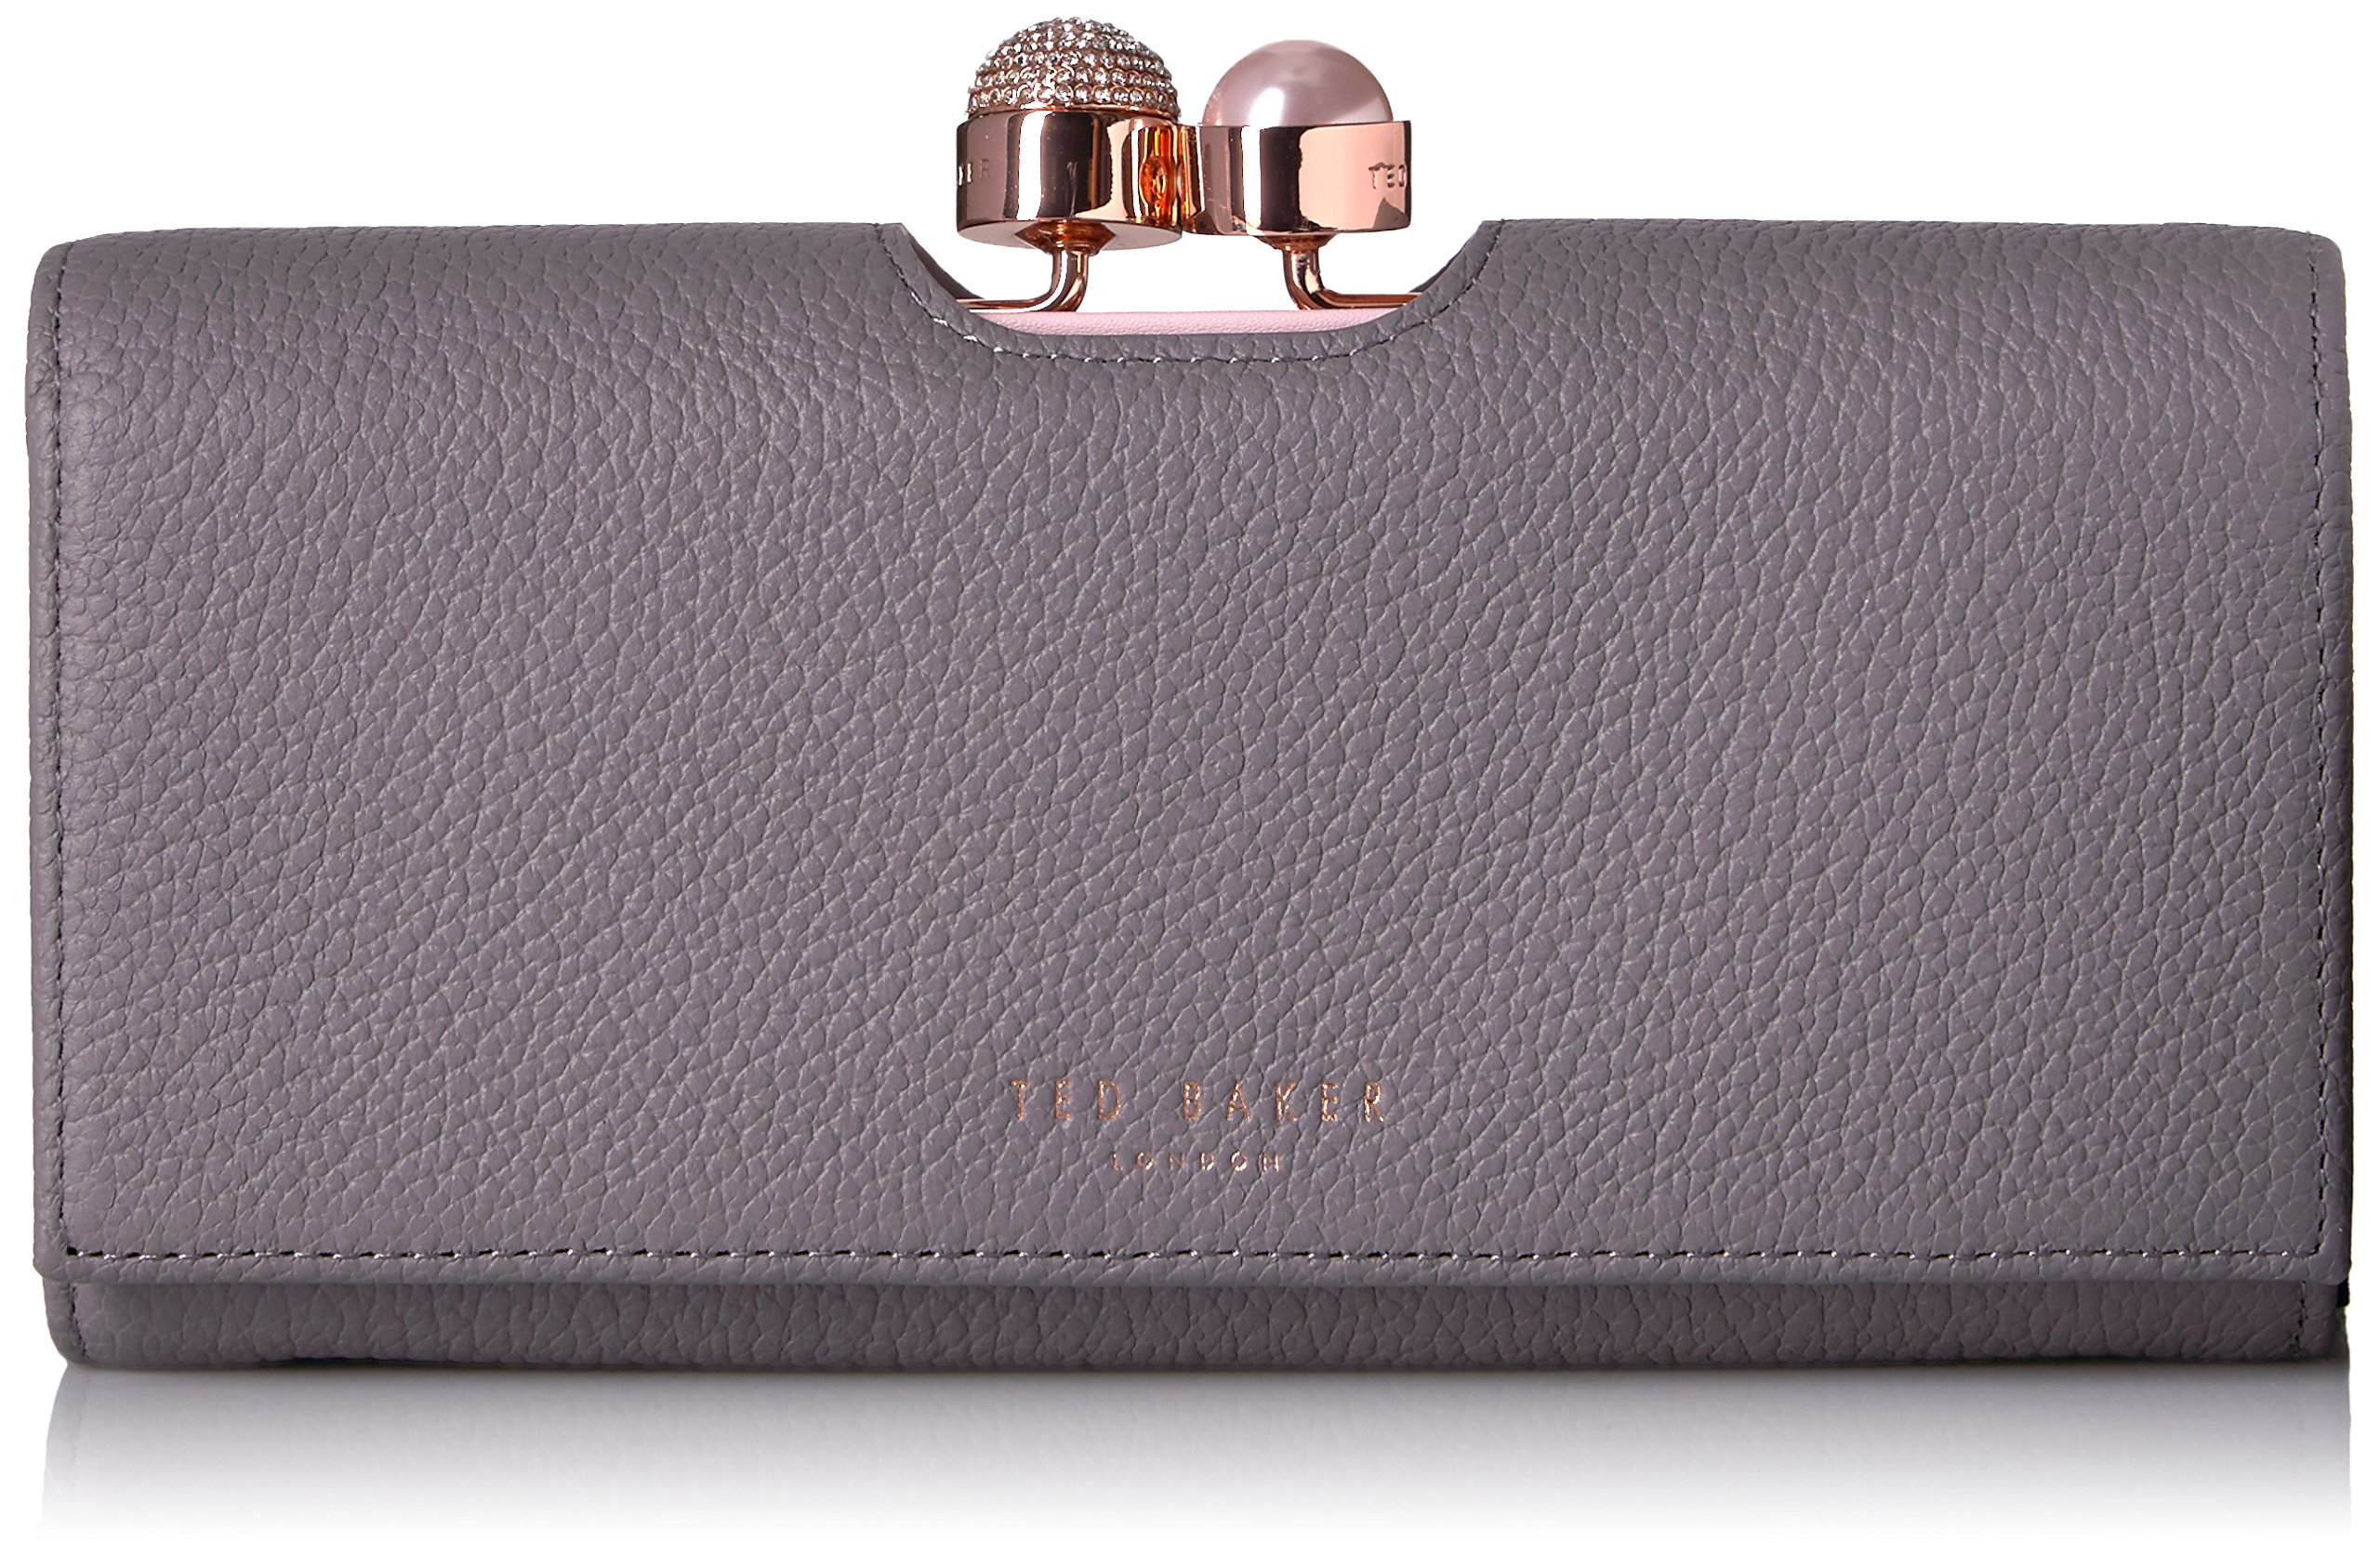 Ted Baker Marta Wallet,Crystal Pearl Bobble Matinee,mid grey,One Size by Ted Baker